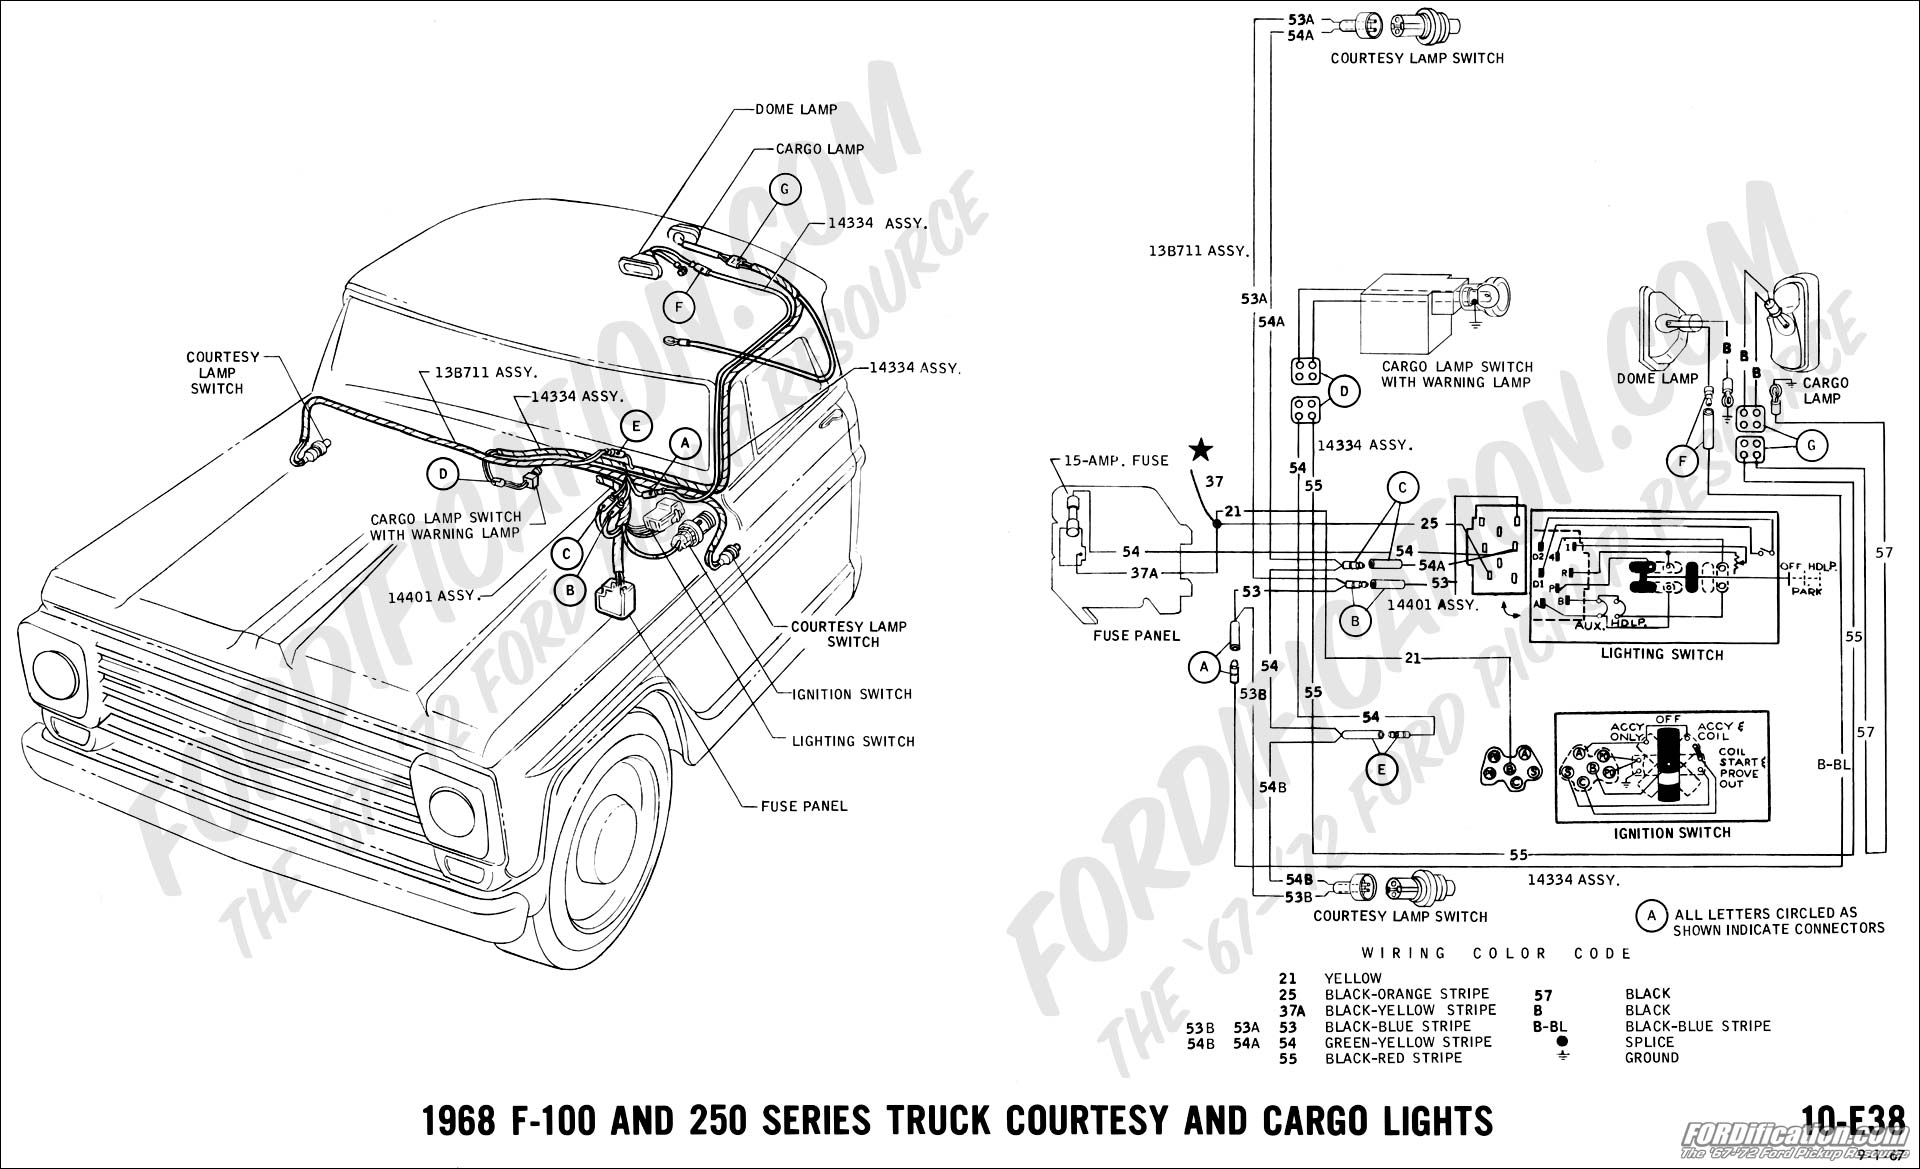 1968 Ford F250 Wiring Diagram - Wiring Diagram List H Wiring Diagram on electrical diagrams, lighting diagrams, switch diagrams, series and parallel circuits diagrams, honda motorcycle repair diagrams, friendship bracelet diagrams, hvac diagrams, sincgars radio configurations diagrams, internet of things diagrams, electronic circuit diagrams, motor diagrams, troubleshooting diagrams, gmc fuse box diagrams, smart car diagrams, pinout diagrams, transformer diagrams, engine diagrams, battery diagrams, led circuit diagrams,